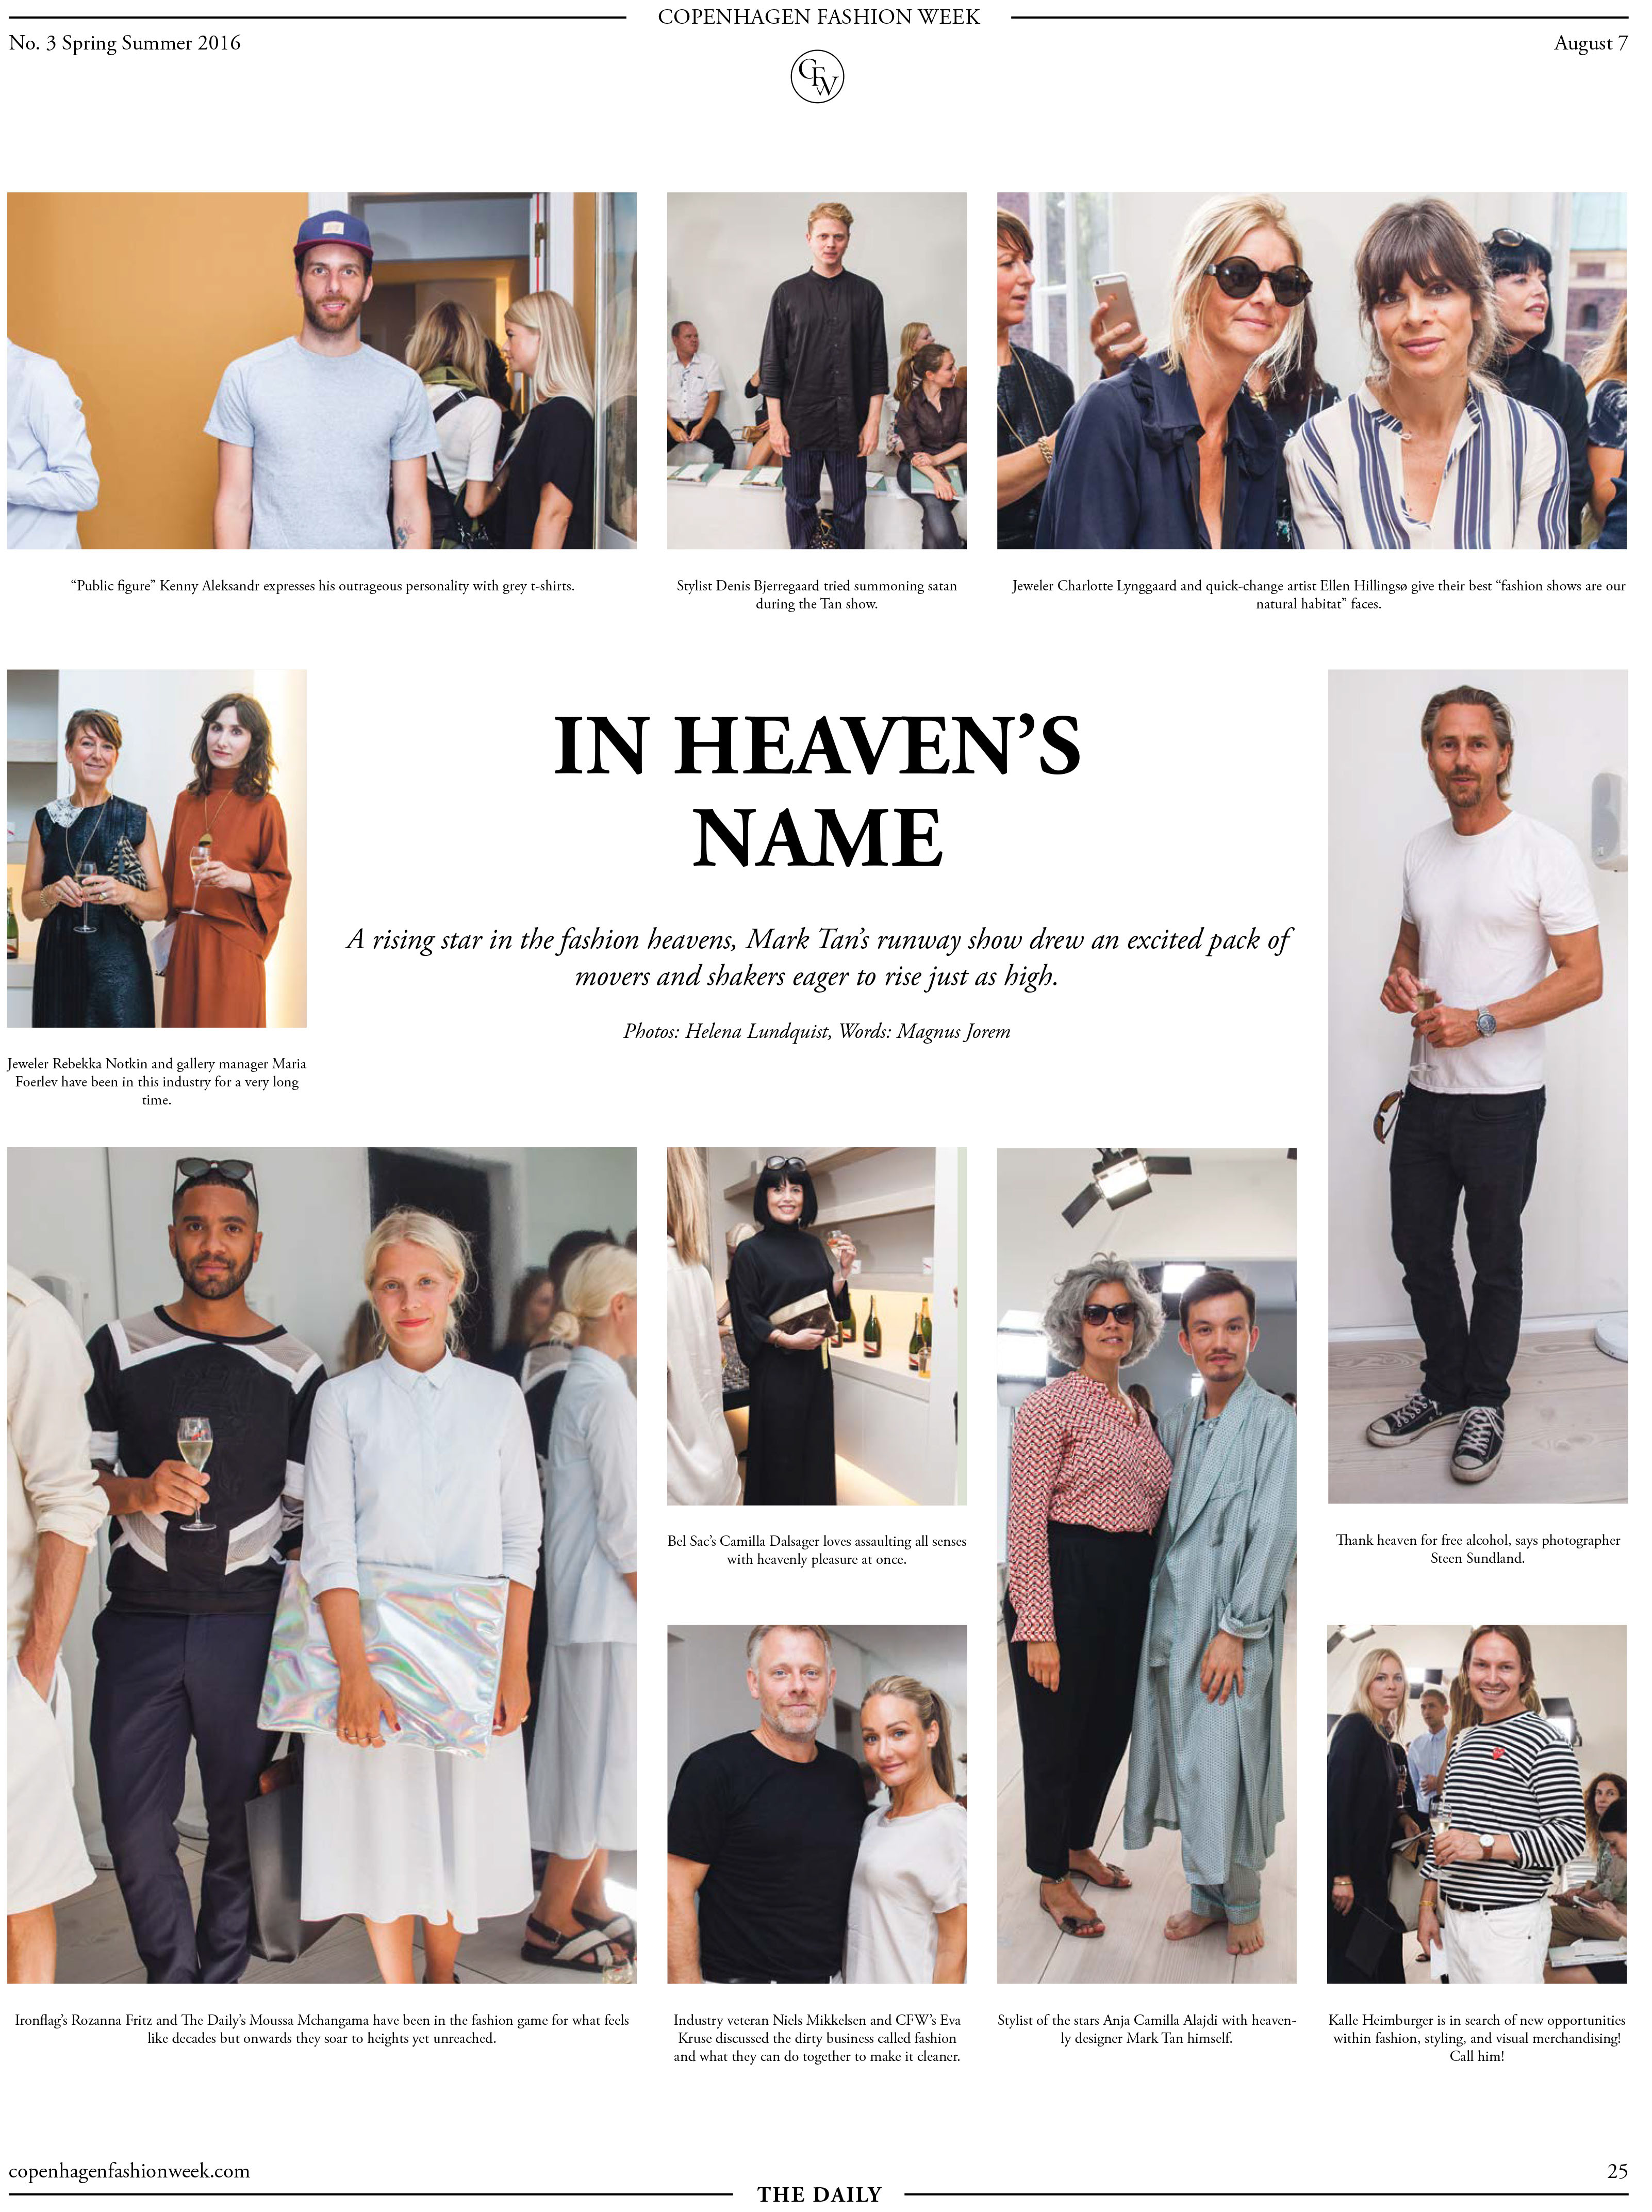 CPHFW_DAILY_3-2.pdf-25_HelenaLundquist